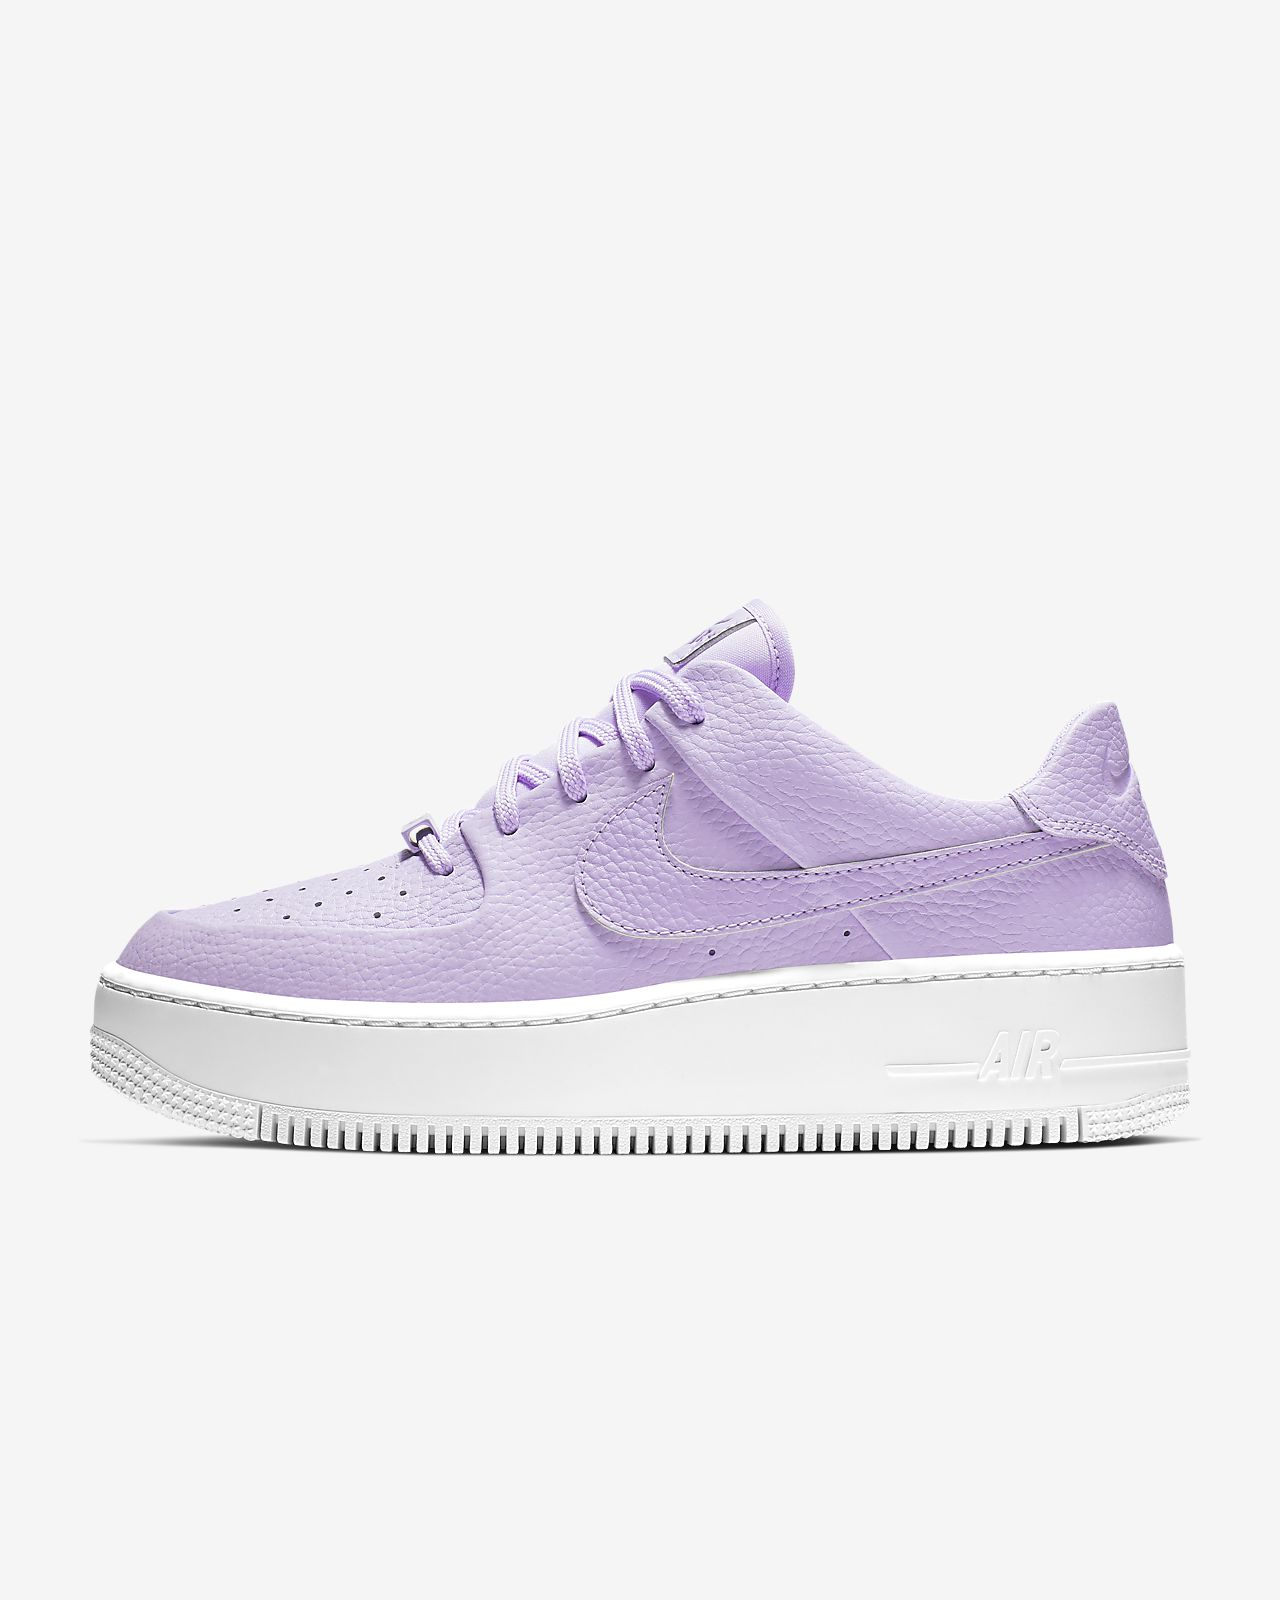 timeless design ad758 819ab ... Skon Nike Air Force 1 Sage Low för kvinnor